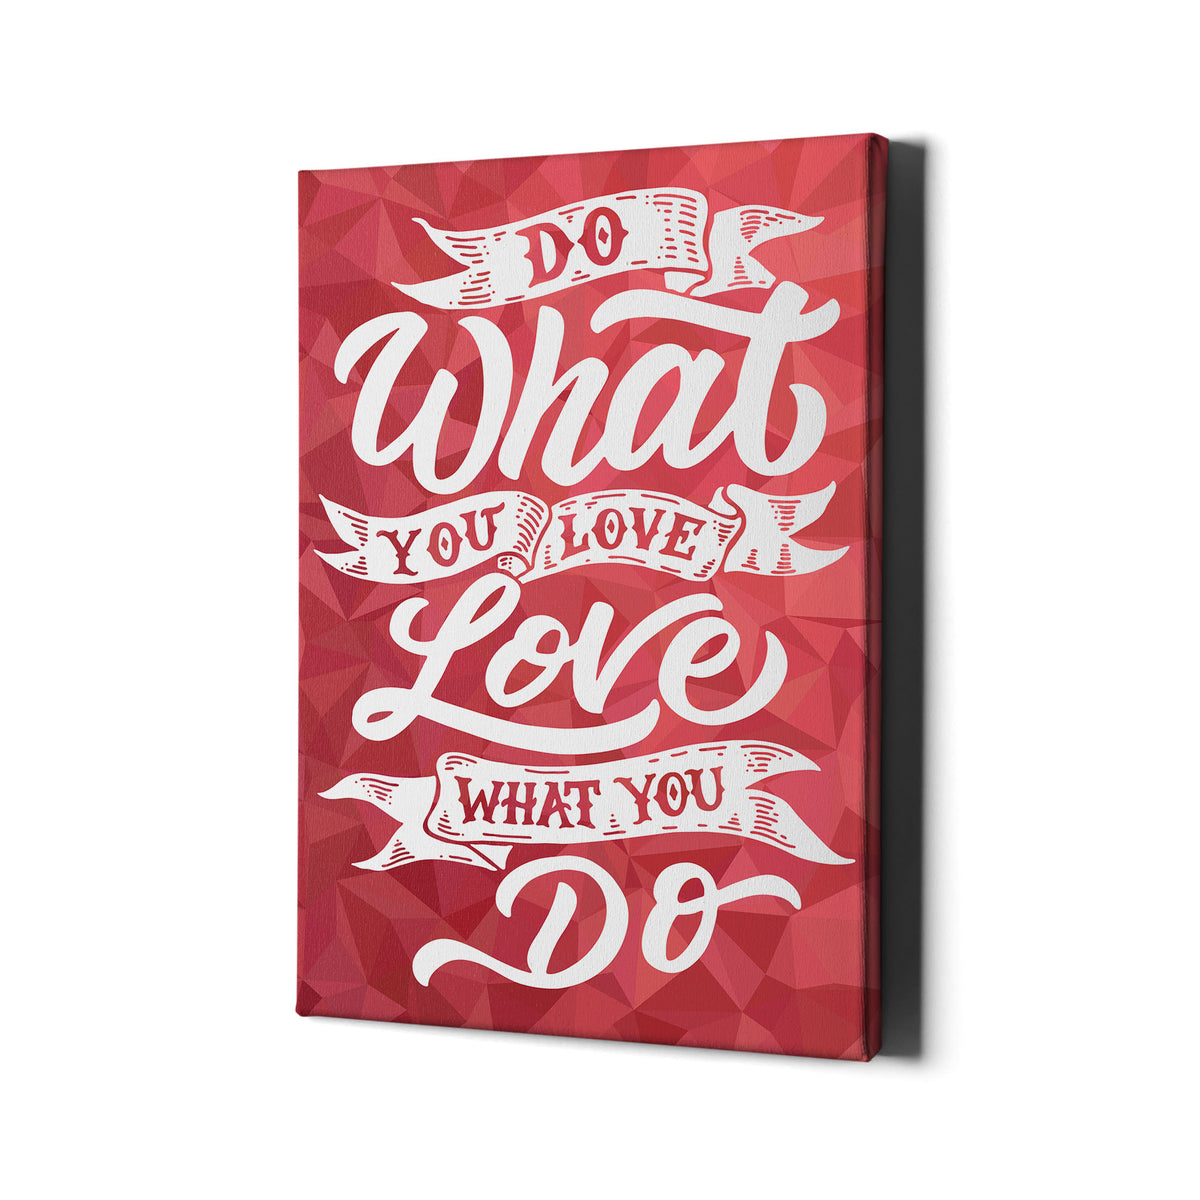 Artiful Do What You Love motivational office and home decor wall art